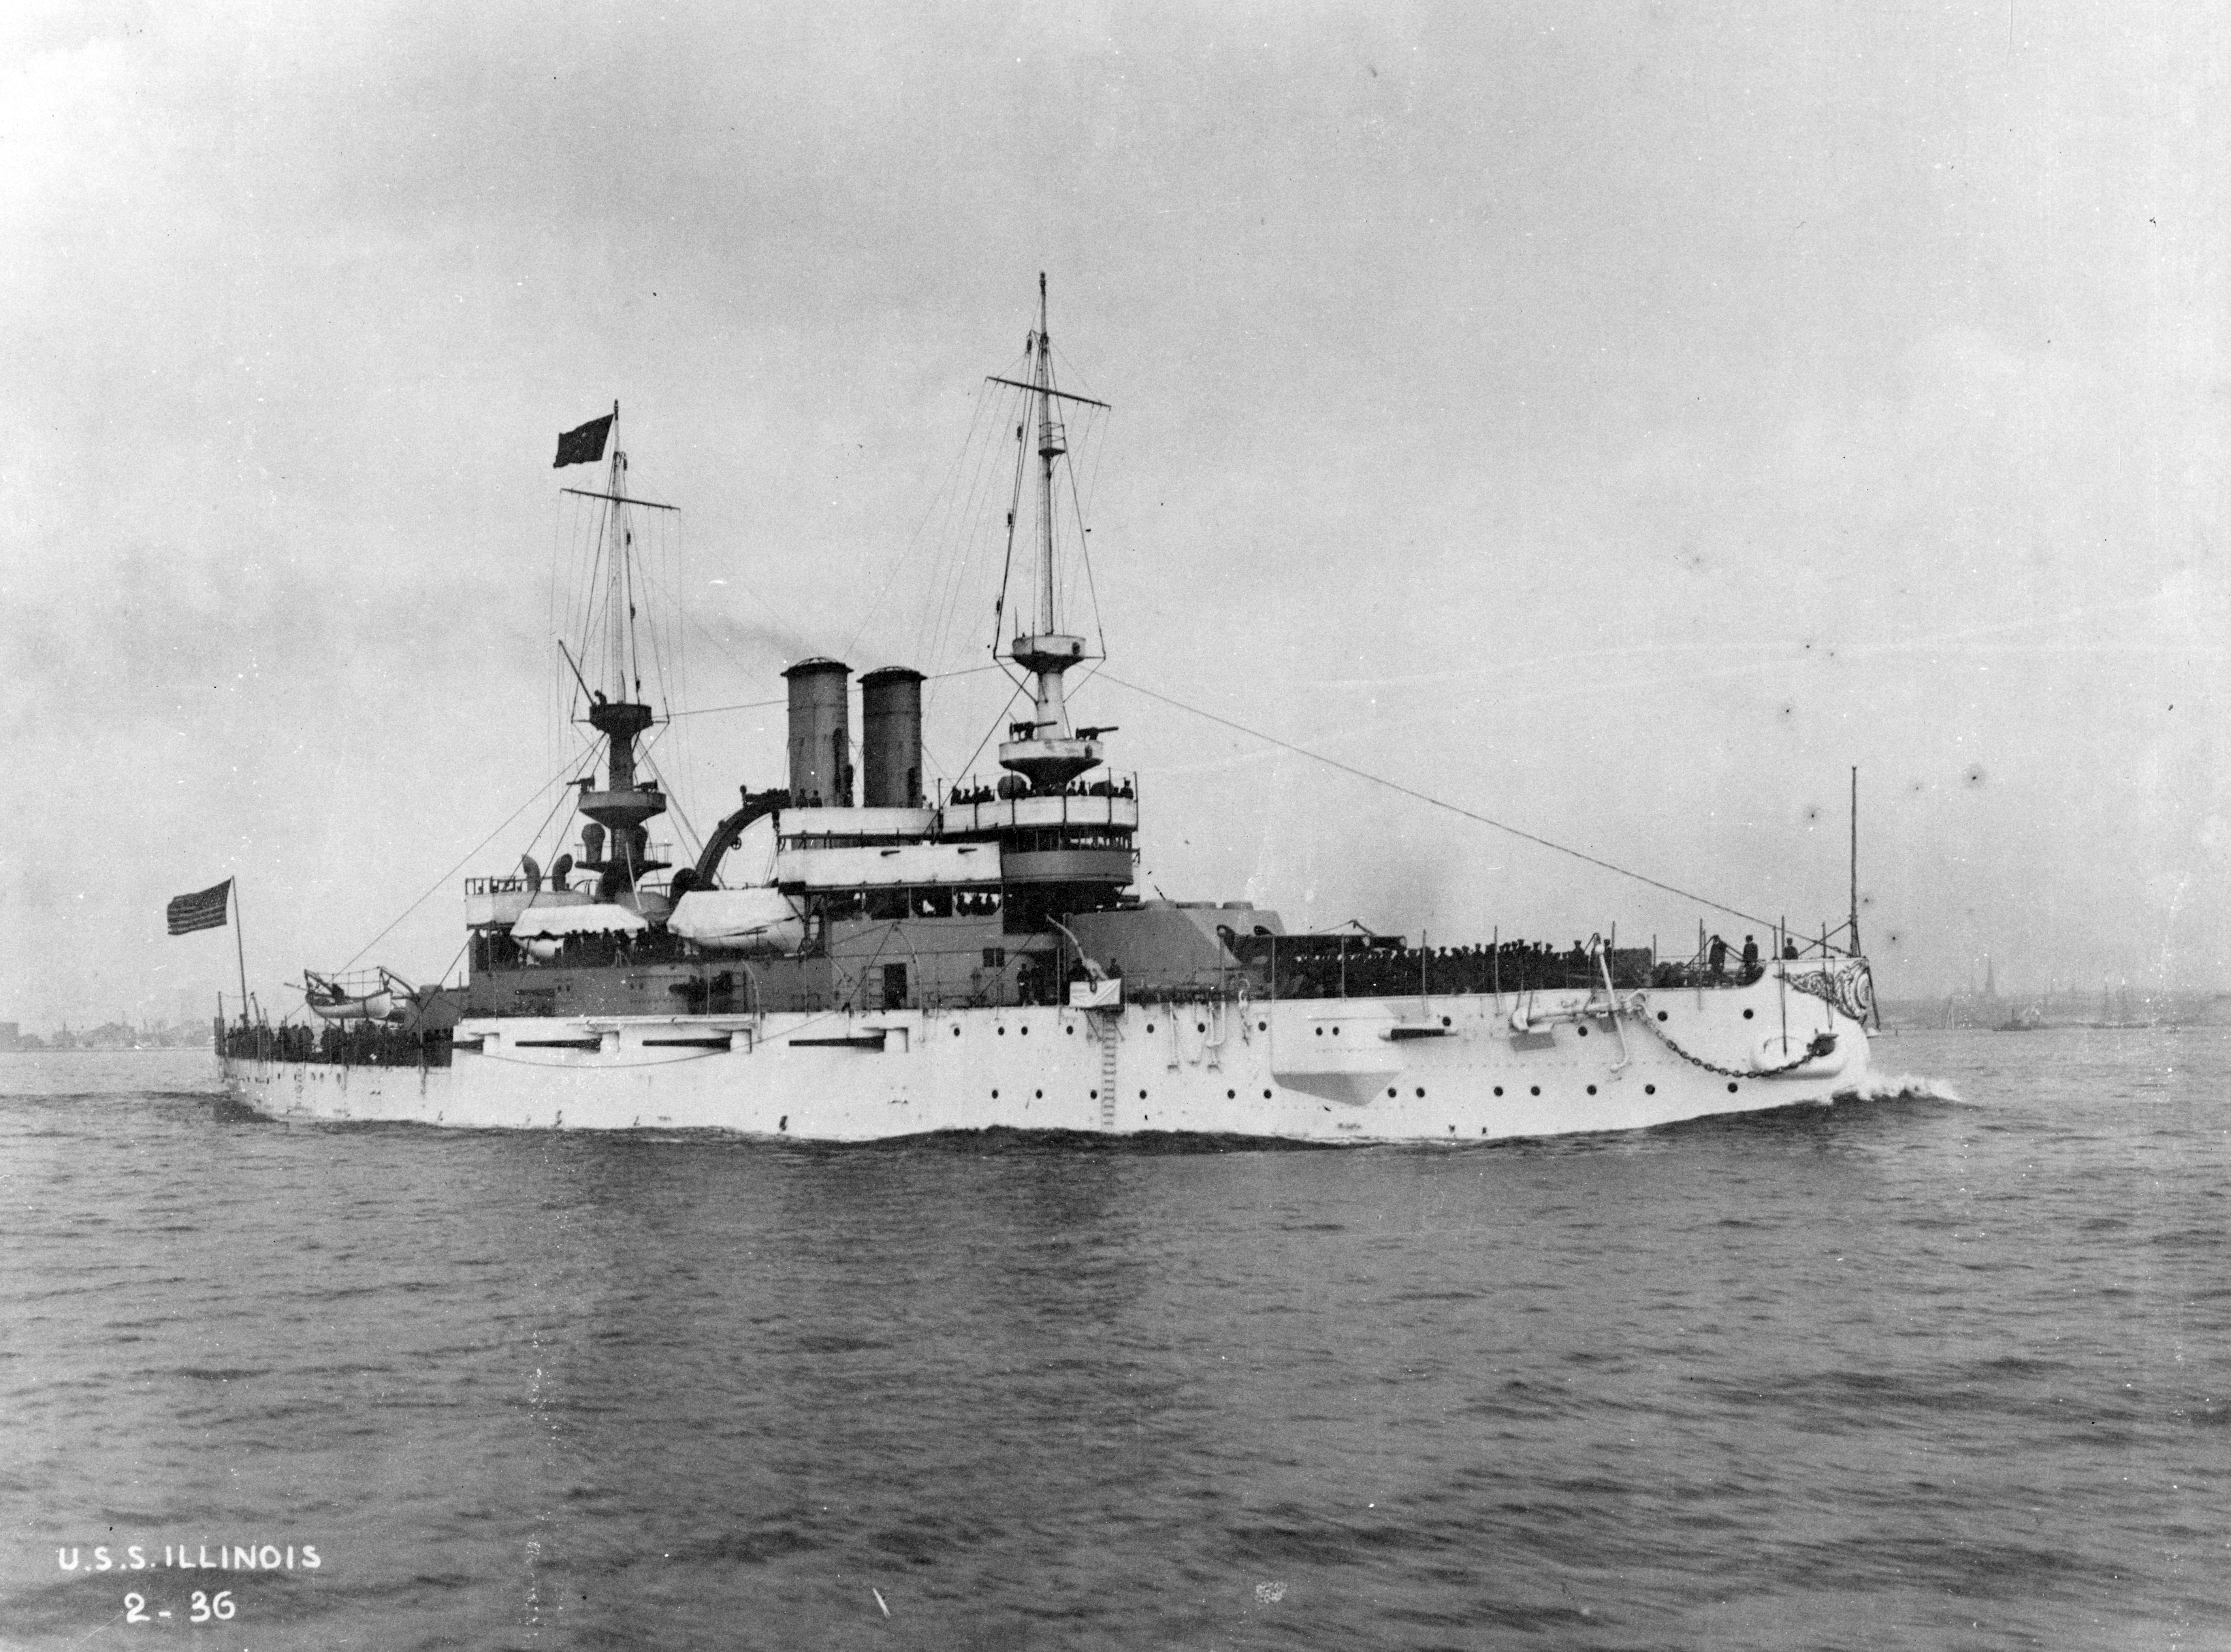 The USS Illinois